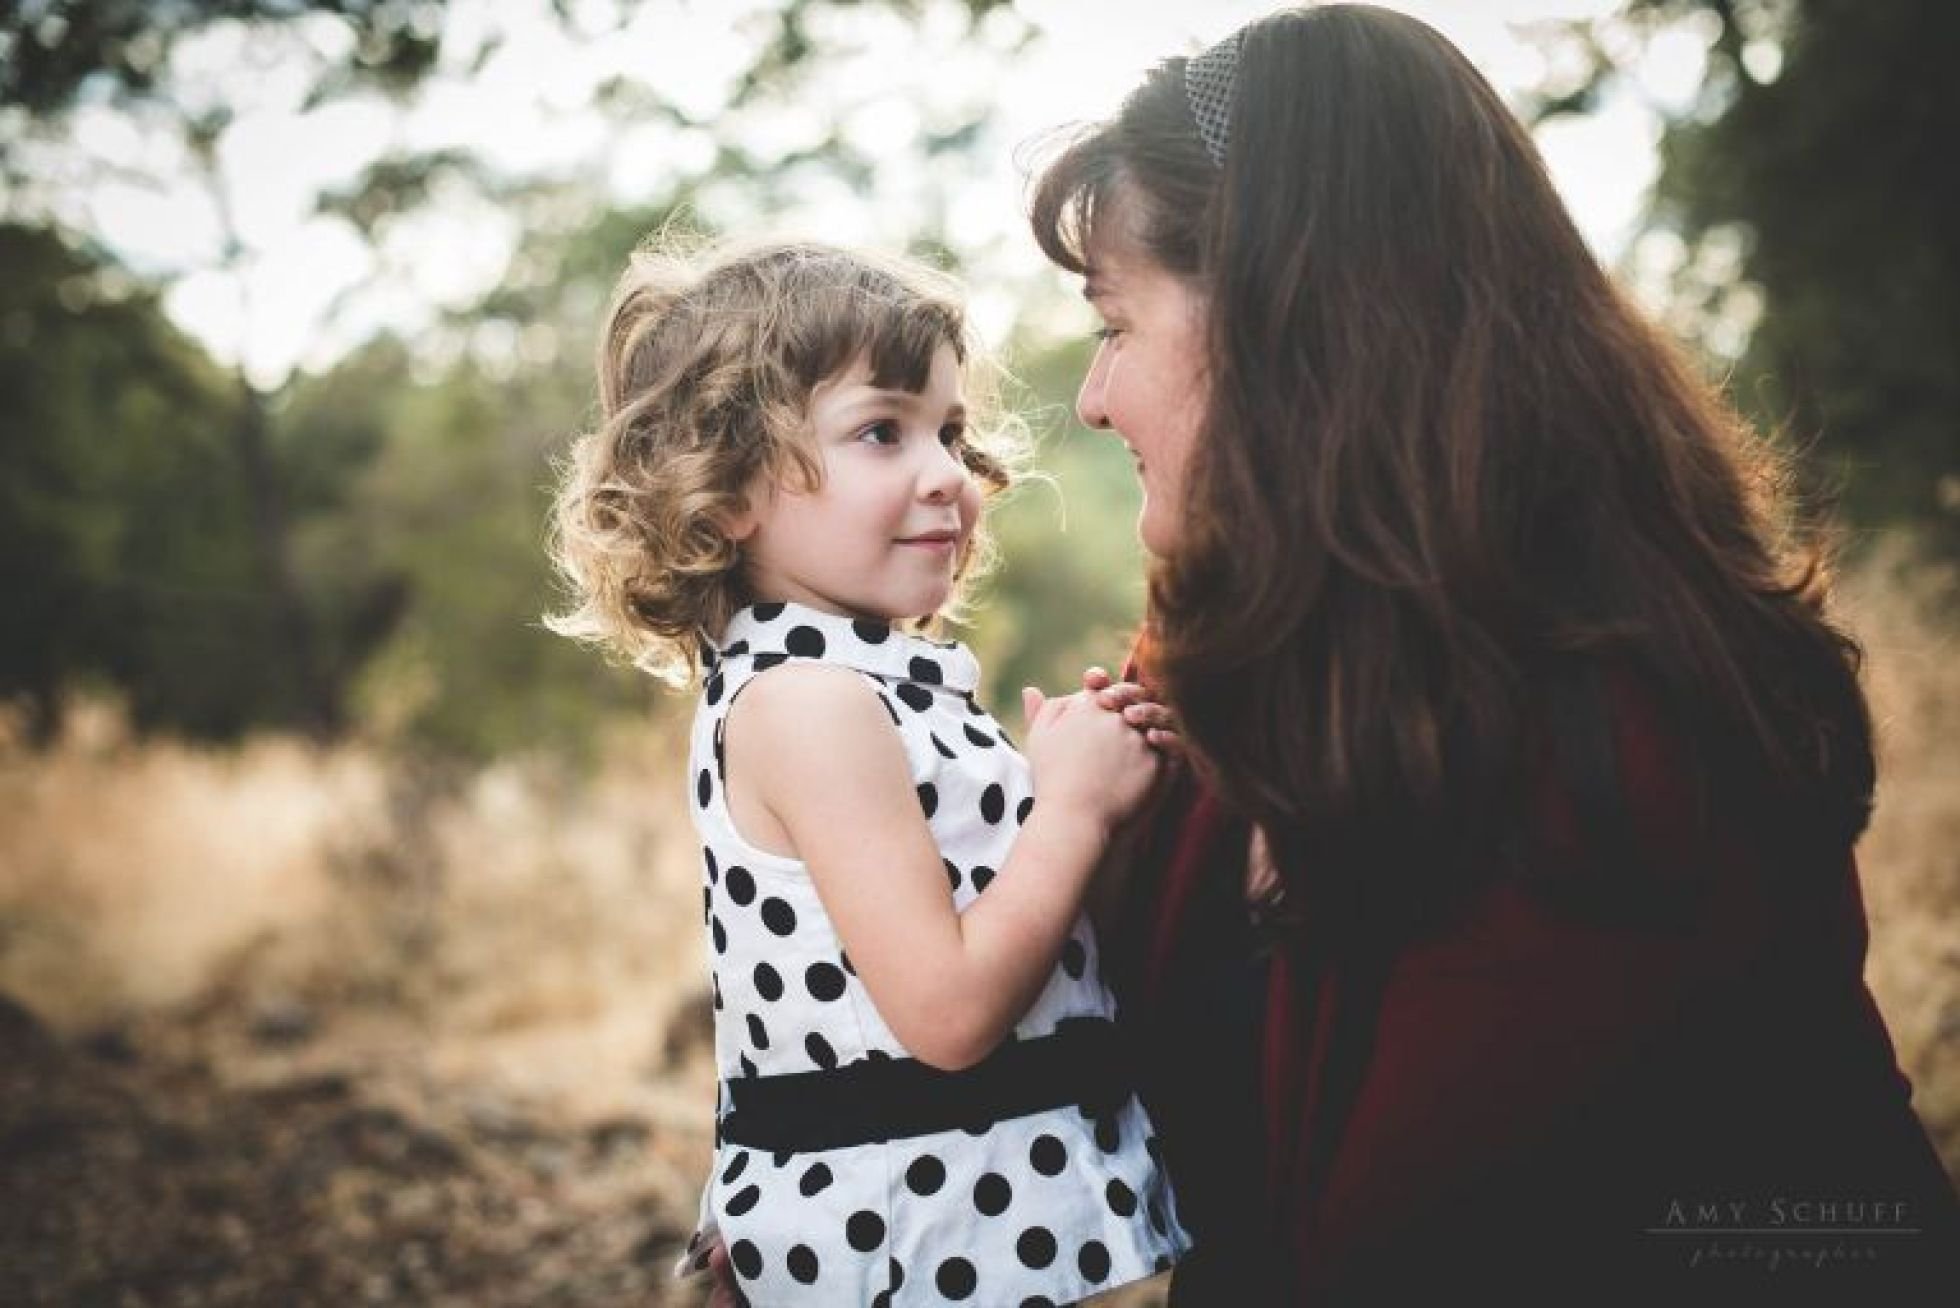 Sacramento Family Photographer - Amy Schuff